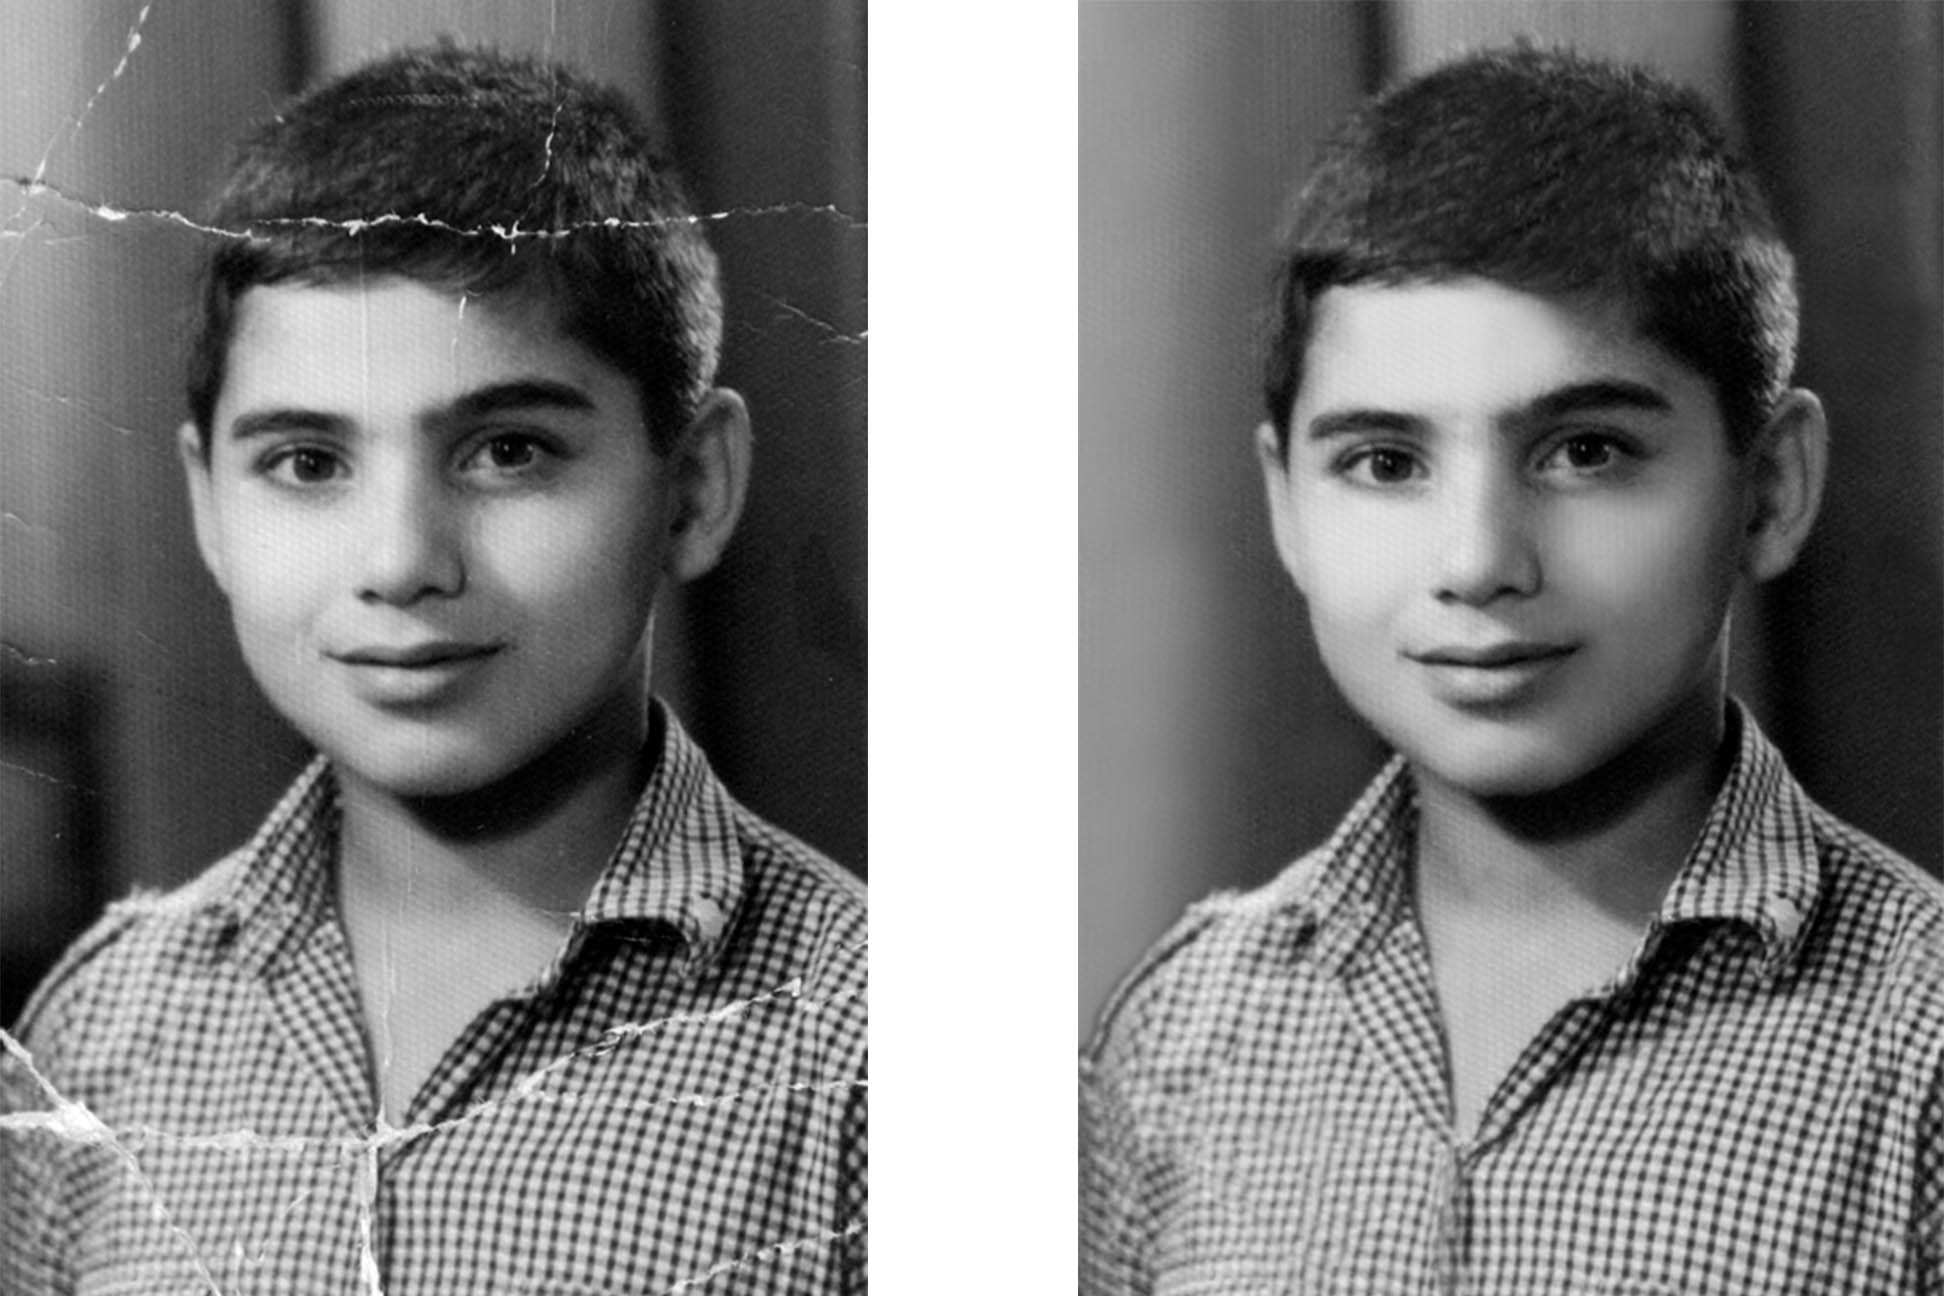 restoration of this young man photo by removing the damaged lines